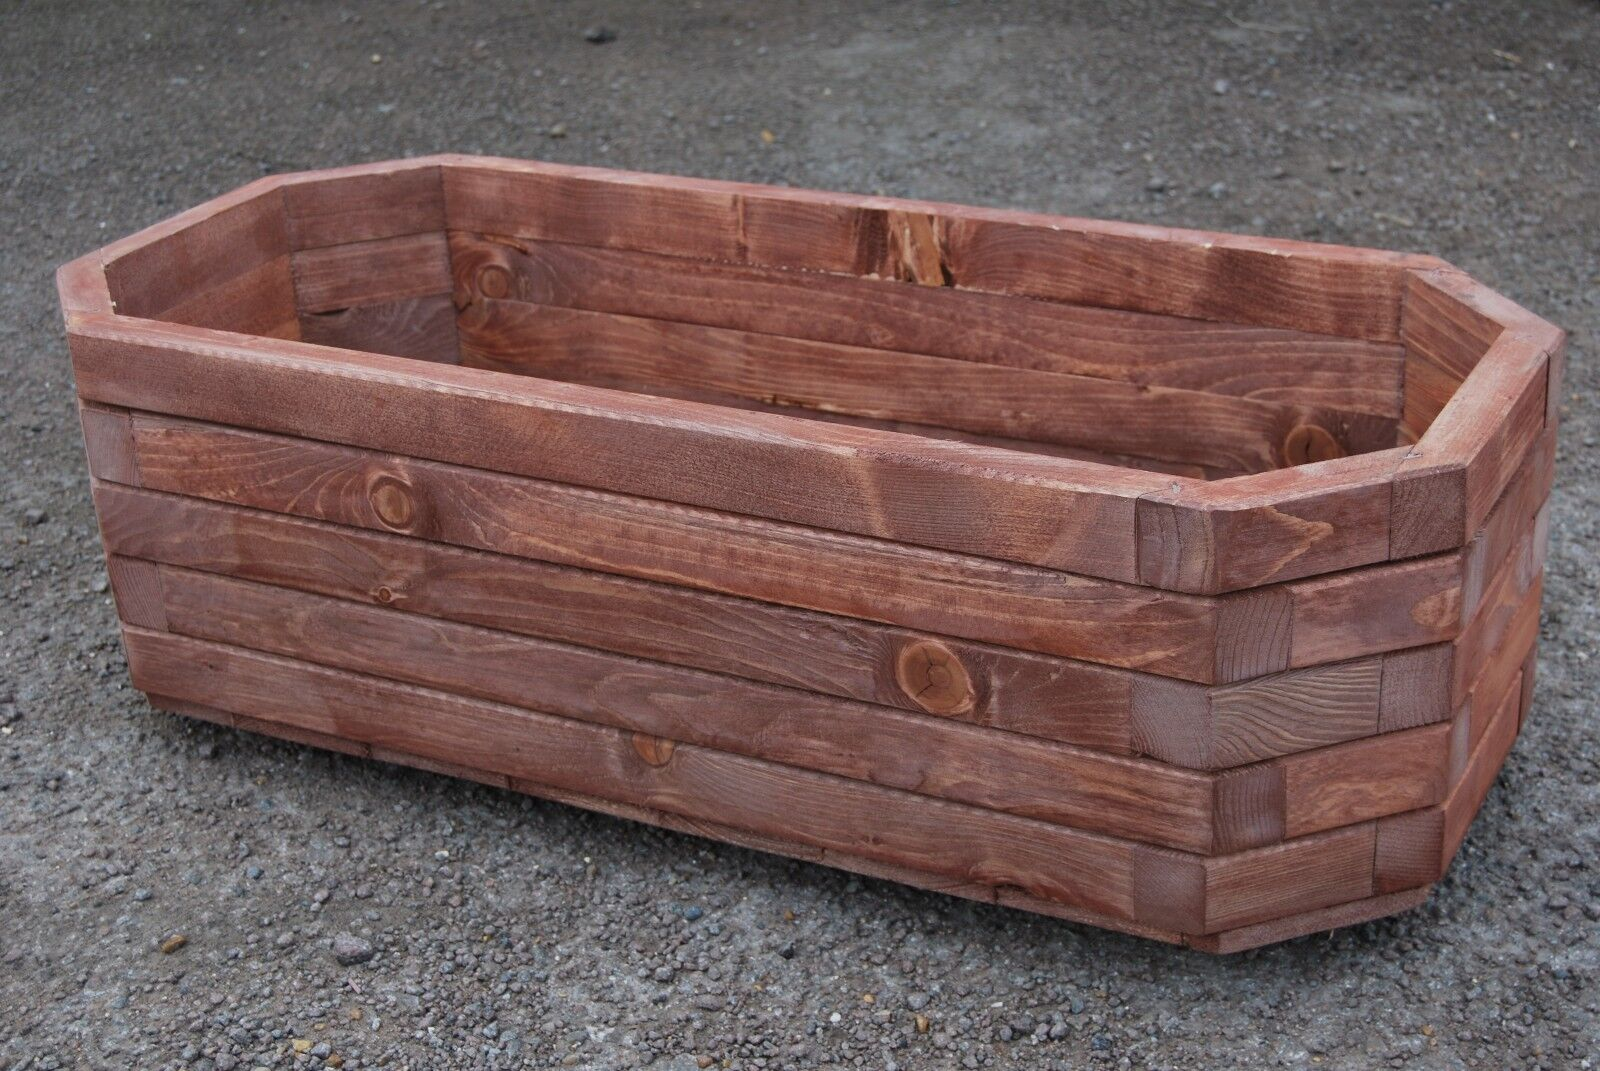 Large Wooden Pot 91 cm Long of Solid Wood Spruce in Rusty Farbe